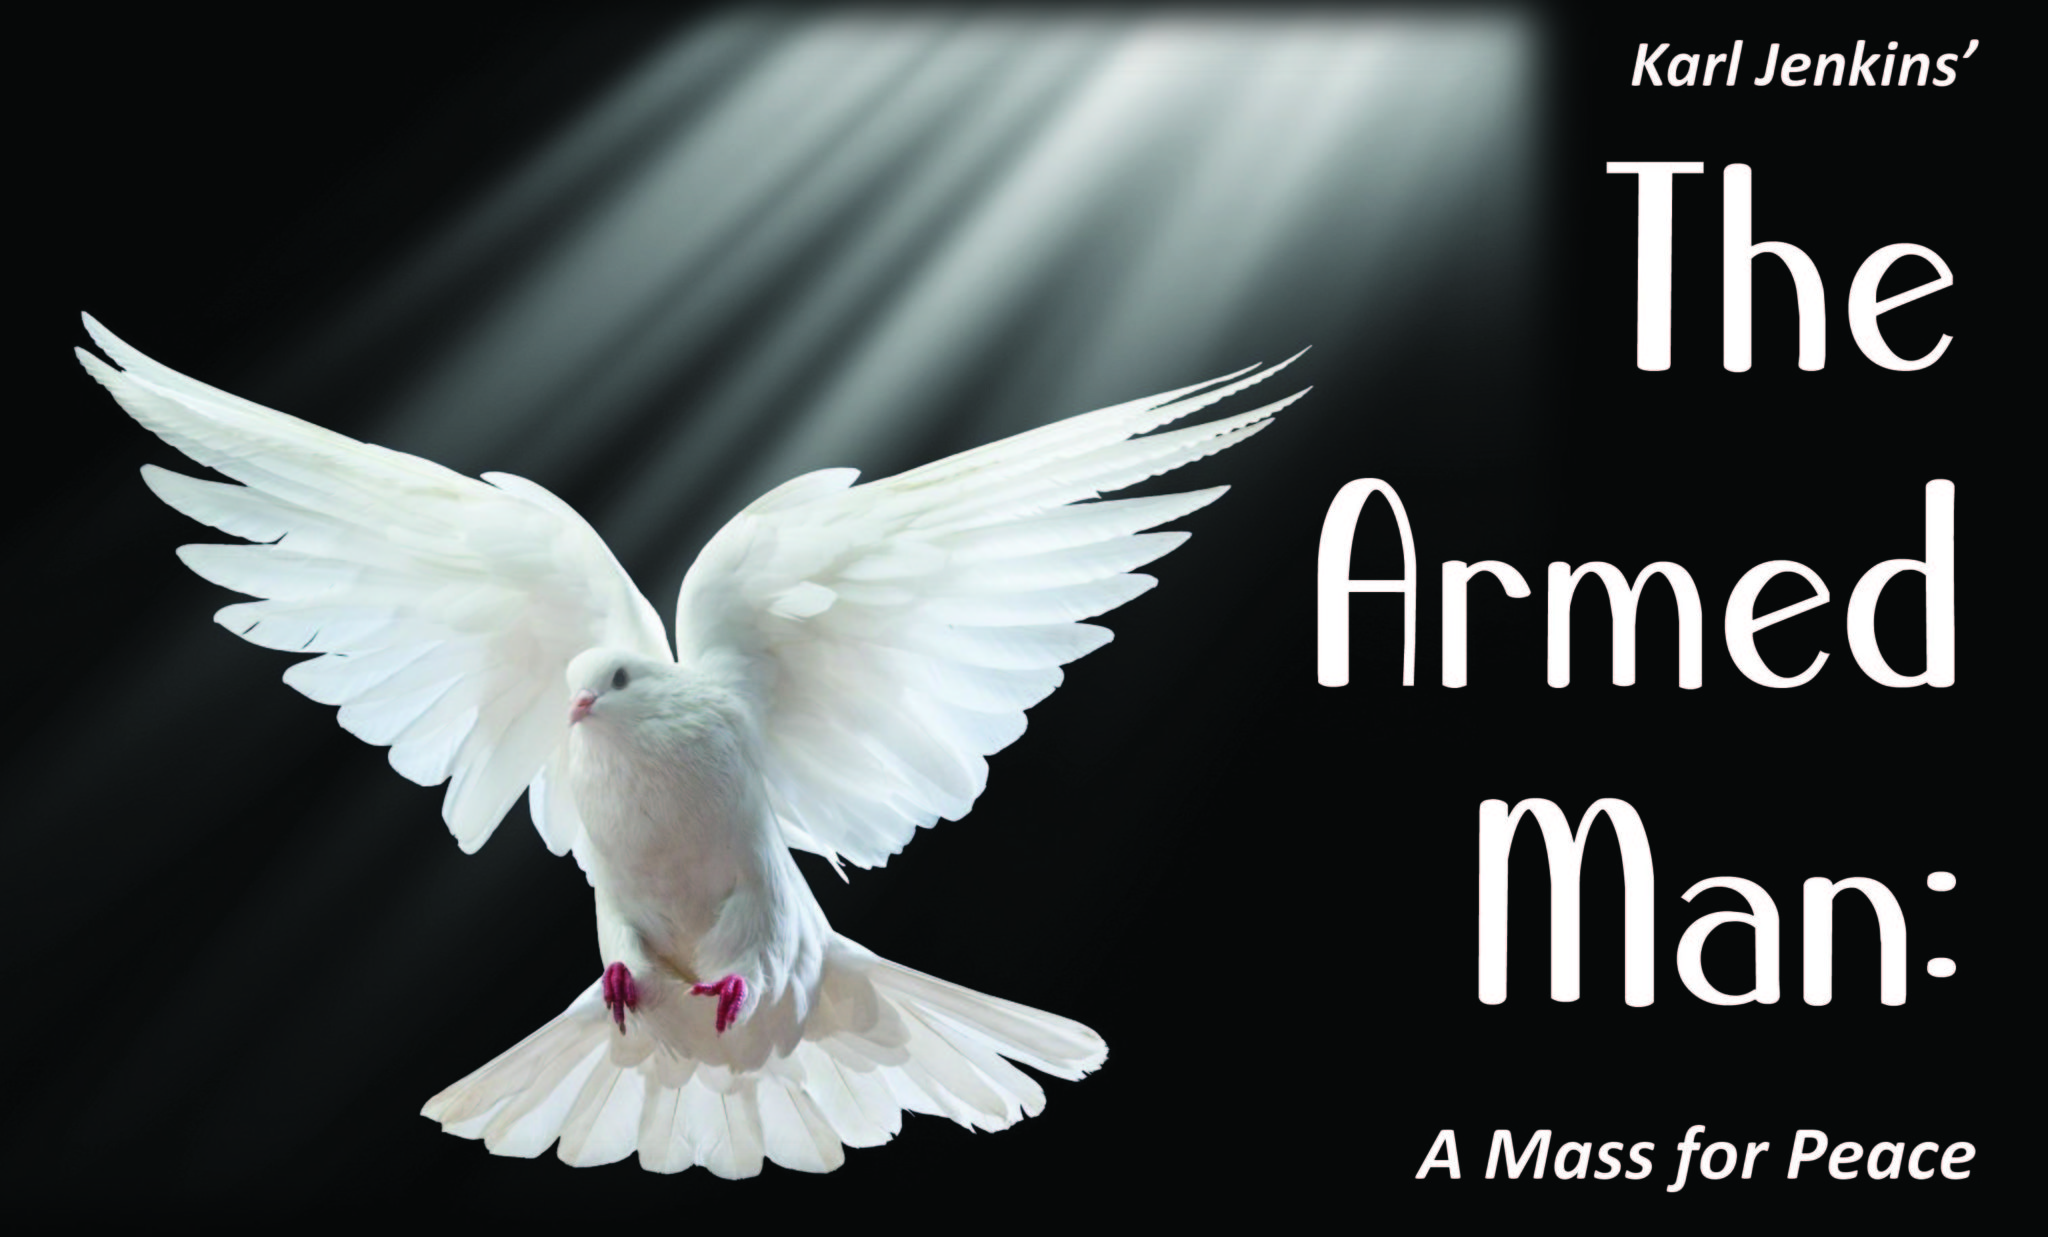 Armed-Man-poster-white-dove-5-28-17-crop.jpg